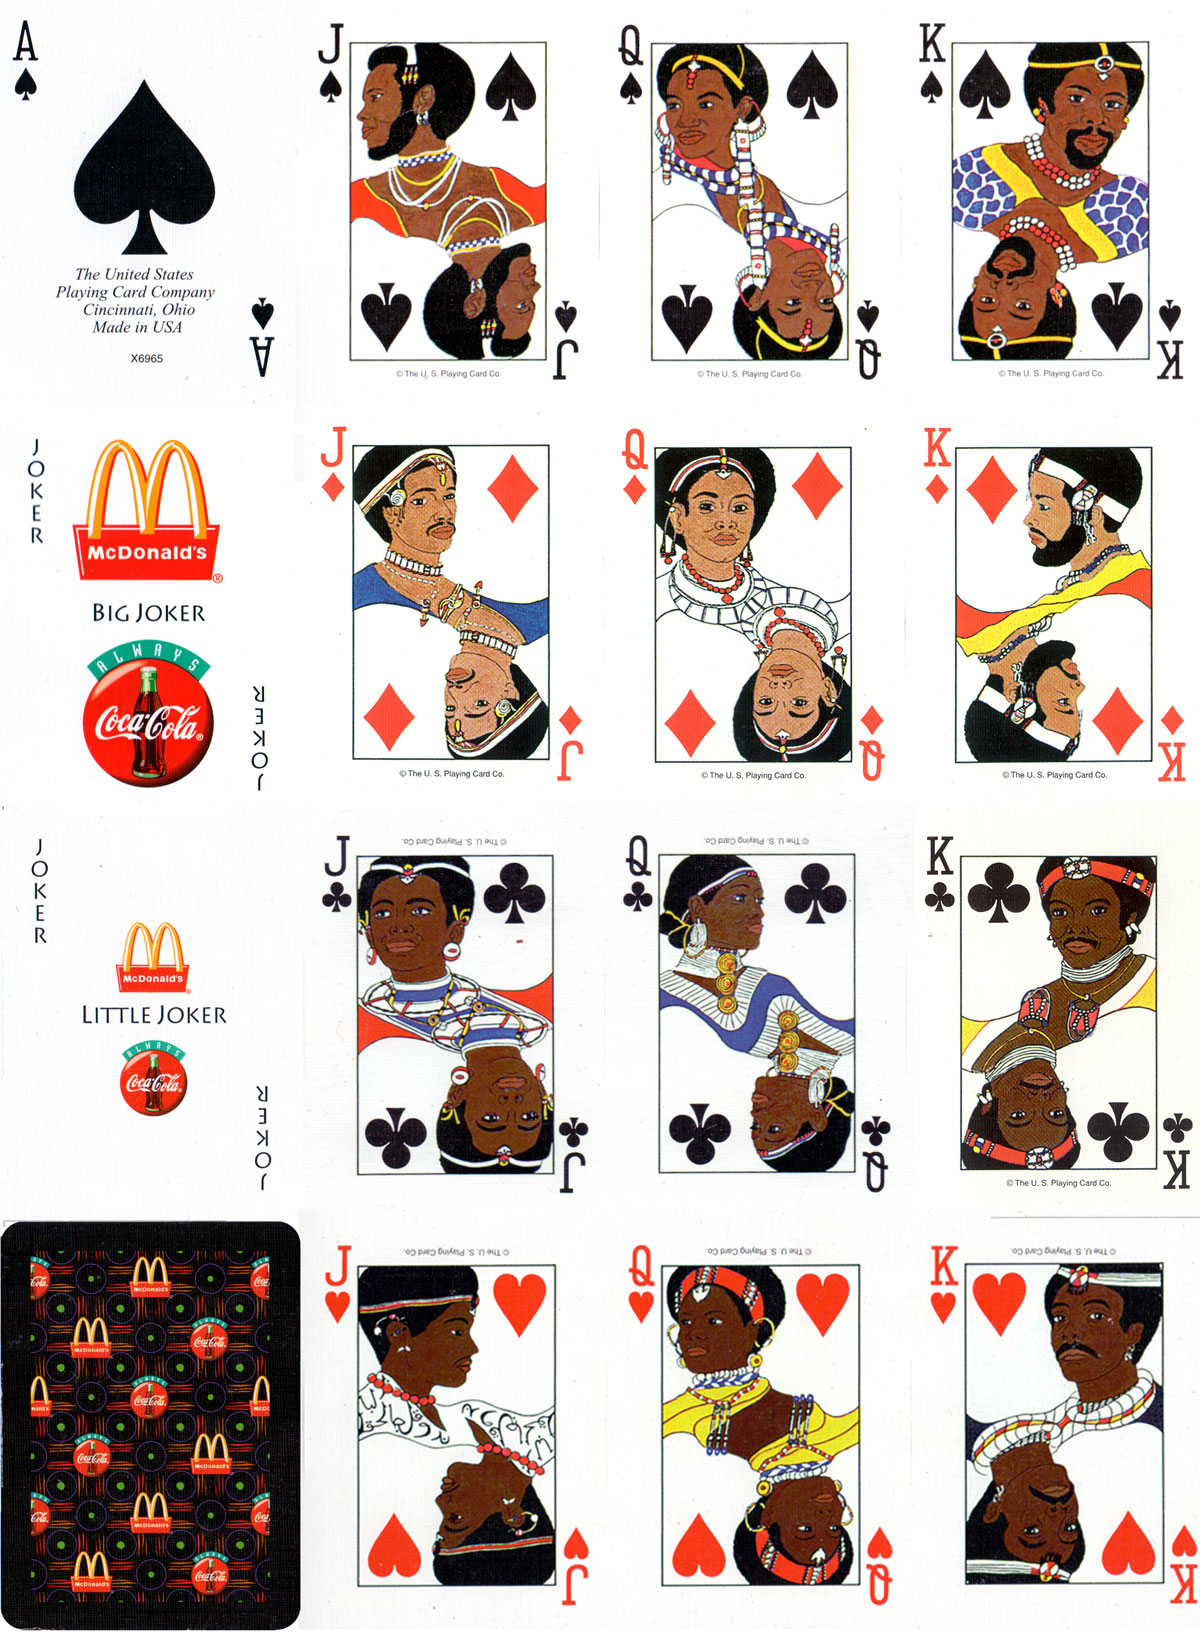 McDonald's Playing Cards by the United States Playing Card Co., Cincinnati, c.1997